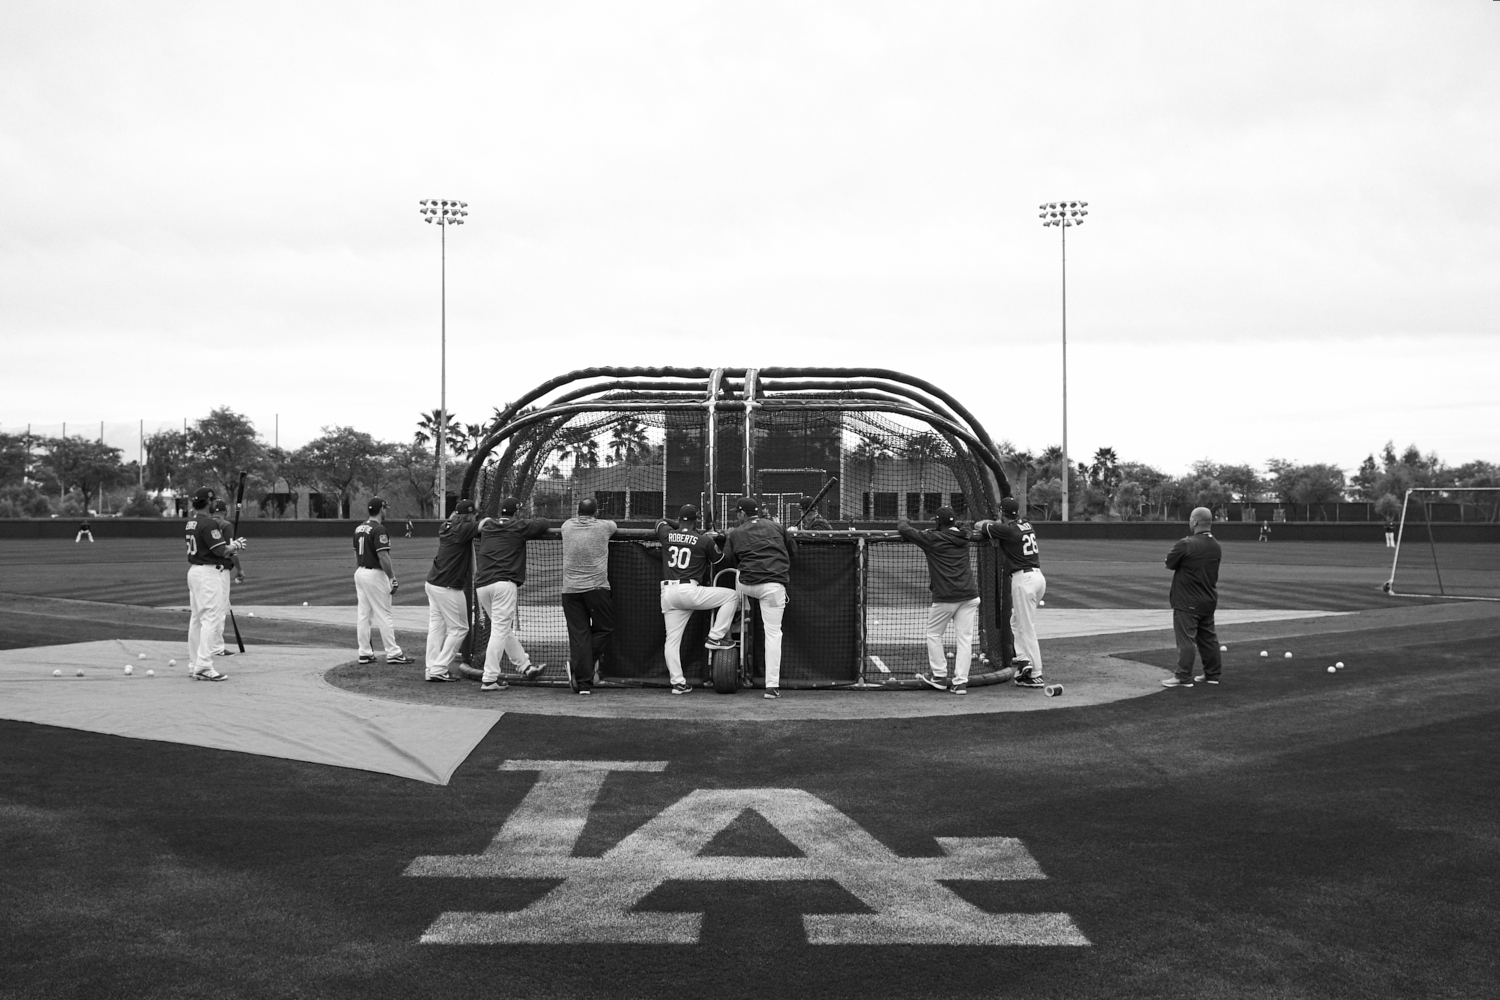 kyle_ellis_photography_dodgers_0091.jpg